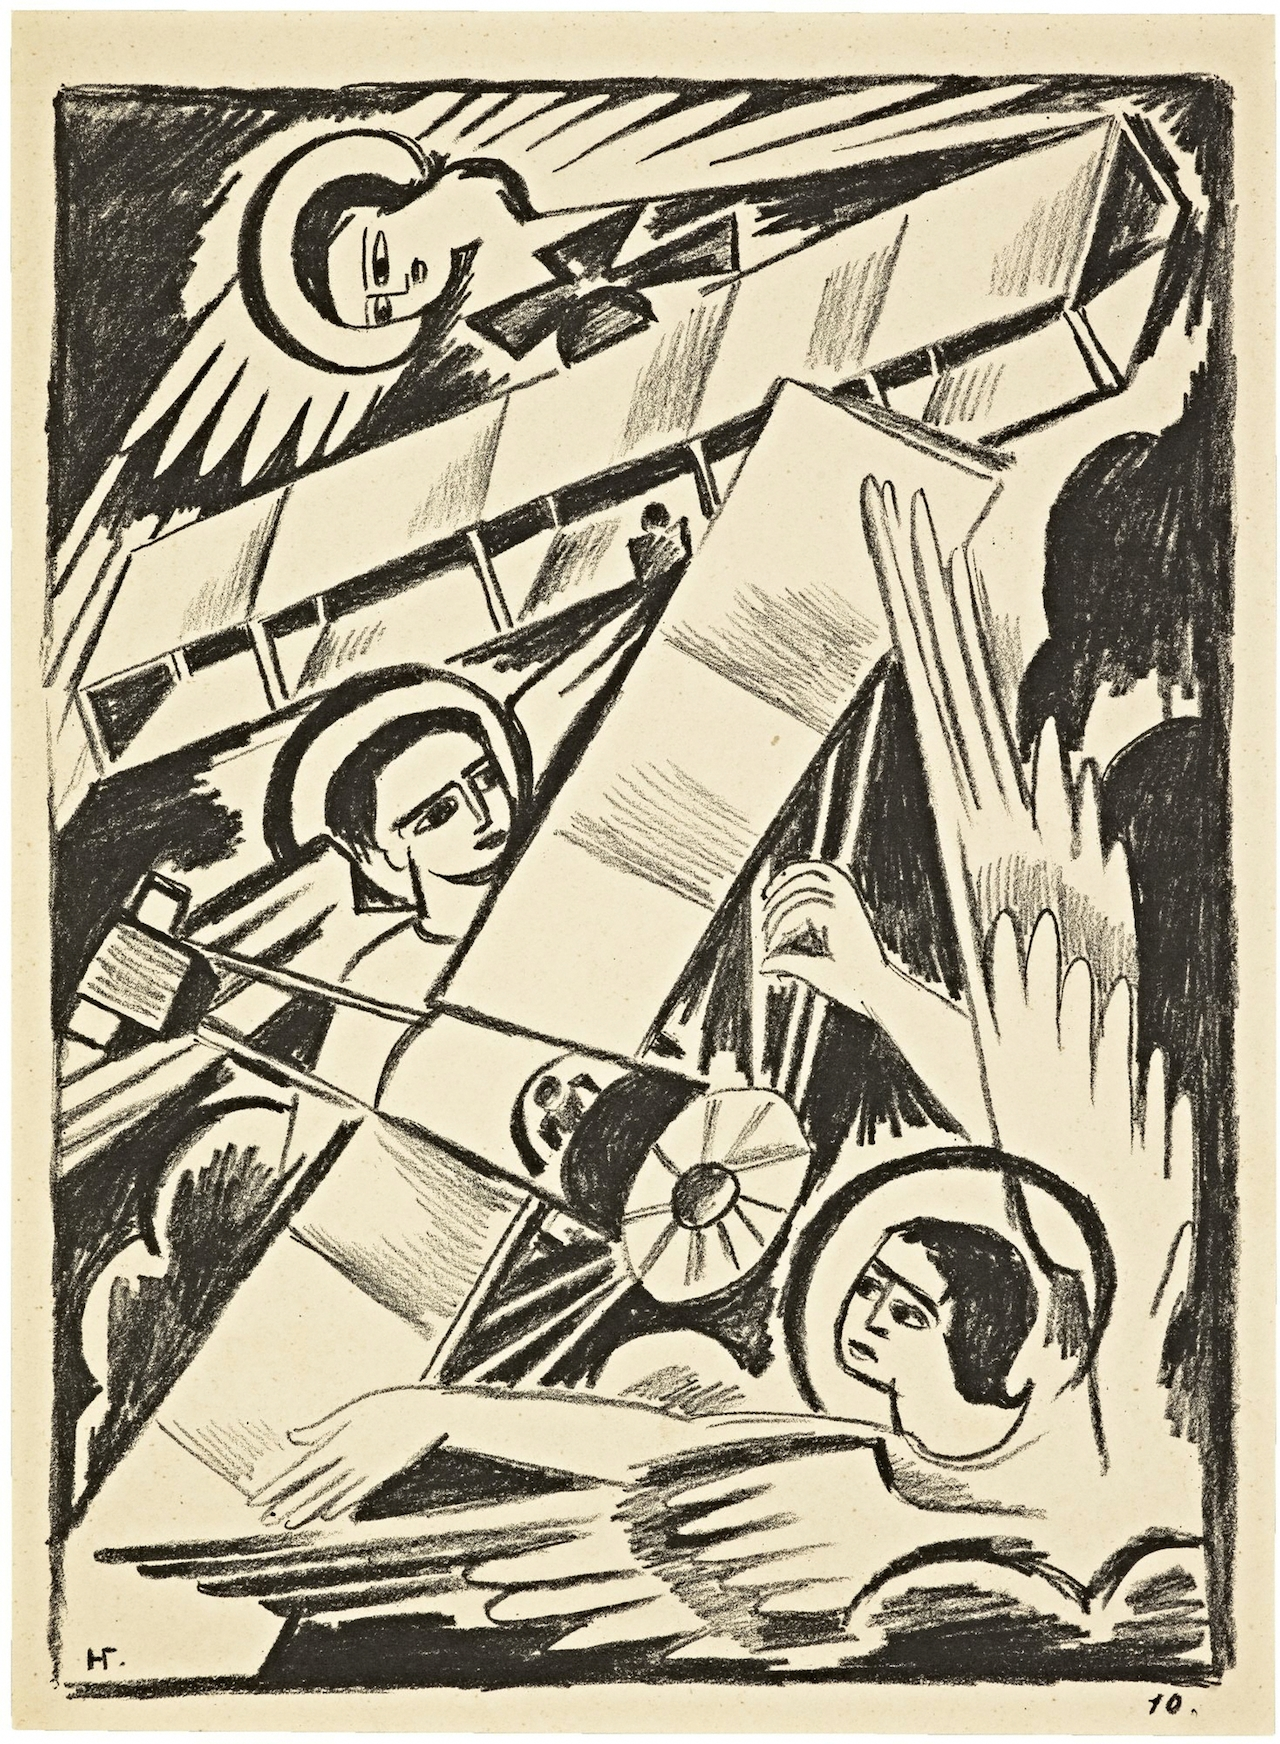 Angels and Airplanes Natalia Goncharova (Russian, 1881–1962). Lithograph. Misticheskie obrazy voiny: 14 lithografi (Mystical images of war: 14 lithographs) (Moscow, 1914), pl. 10. The Getty Research Institute, Los Angeles (88-B28354) © 2014 Artists Rights Society (ARS), New York / ADAGP, Paris